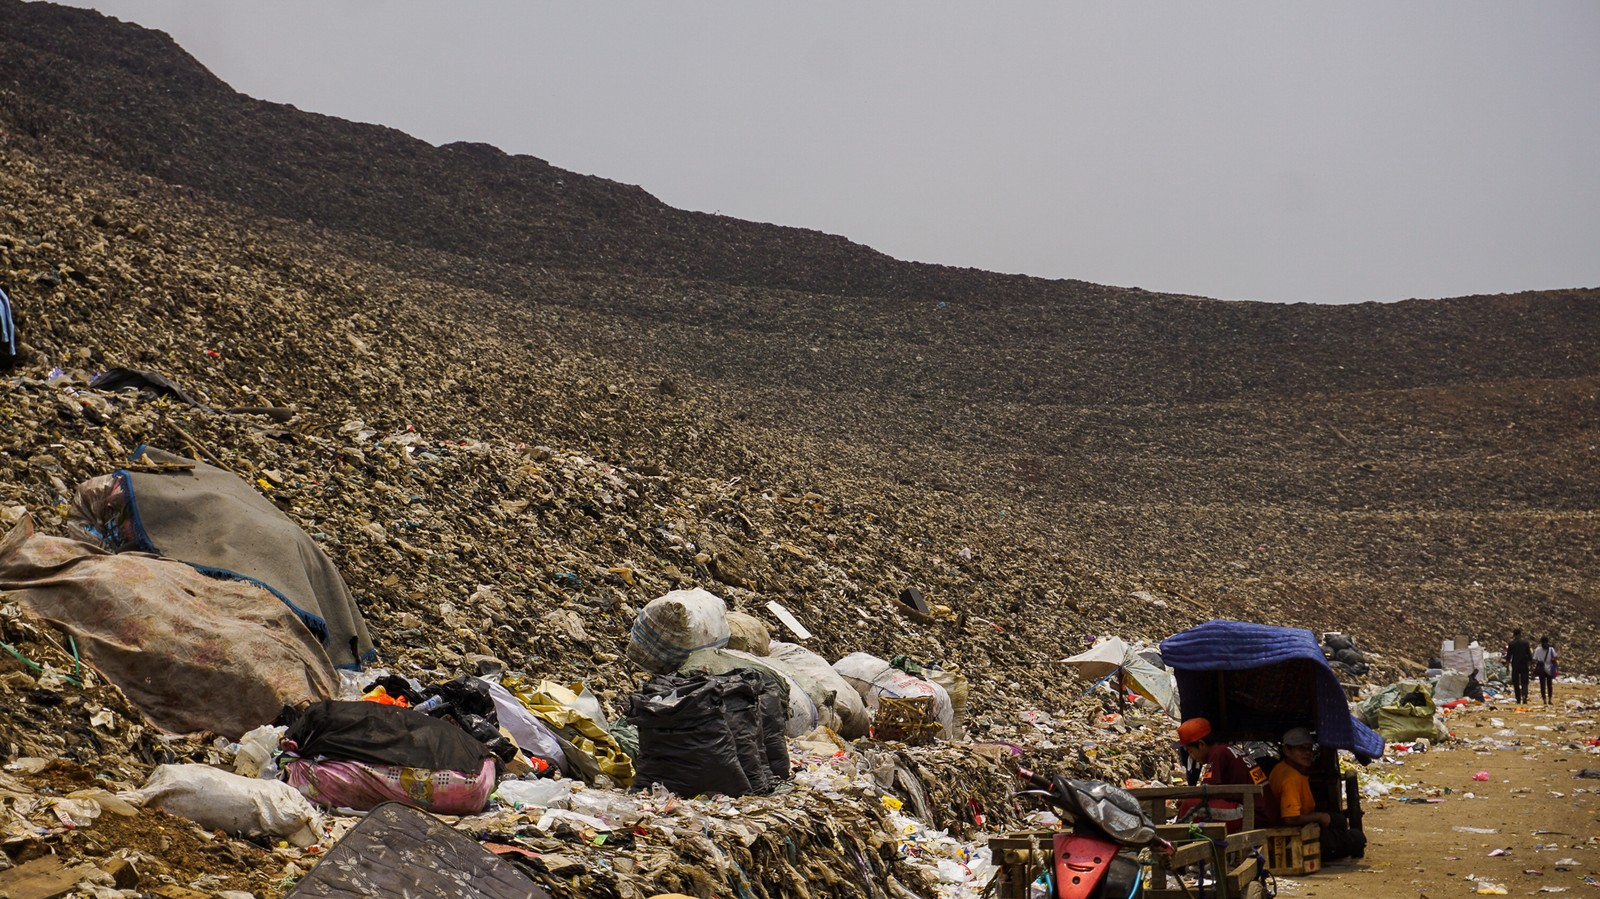 The 'World's Largest Dump' Is in Indonesia and It's a Ticking Time Bomb